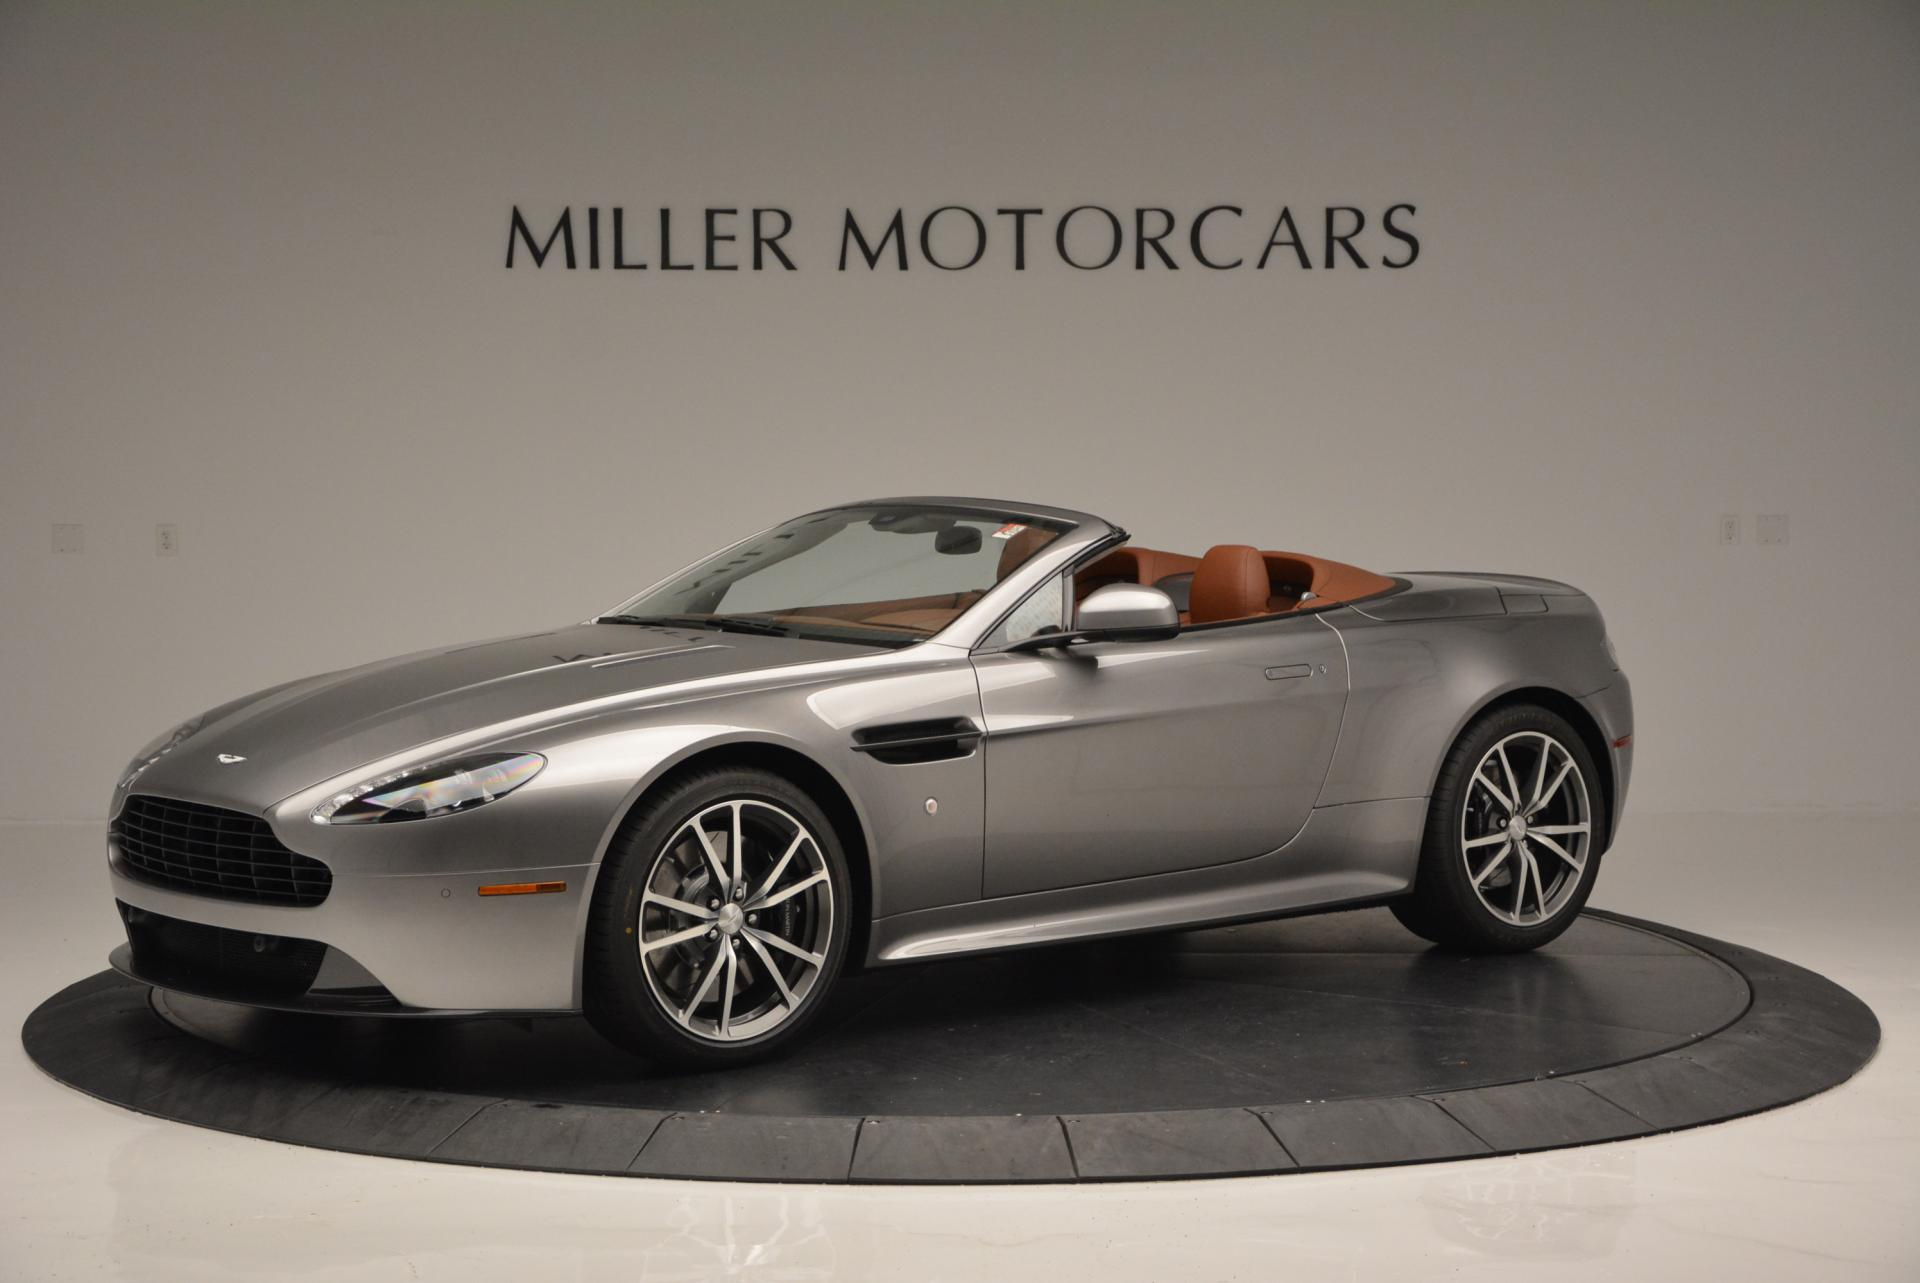 New 2016 Aston Martin V8 Vantage S  For Sale In Westport, CT 88_p2